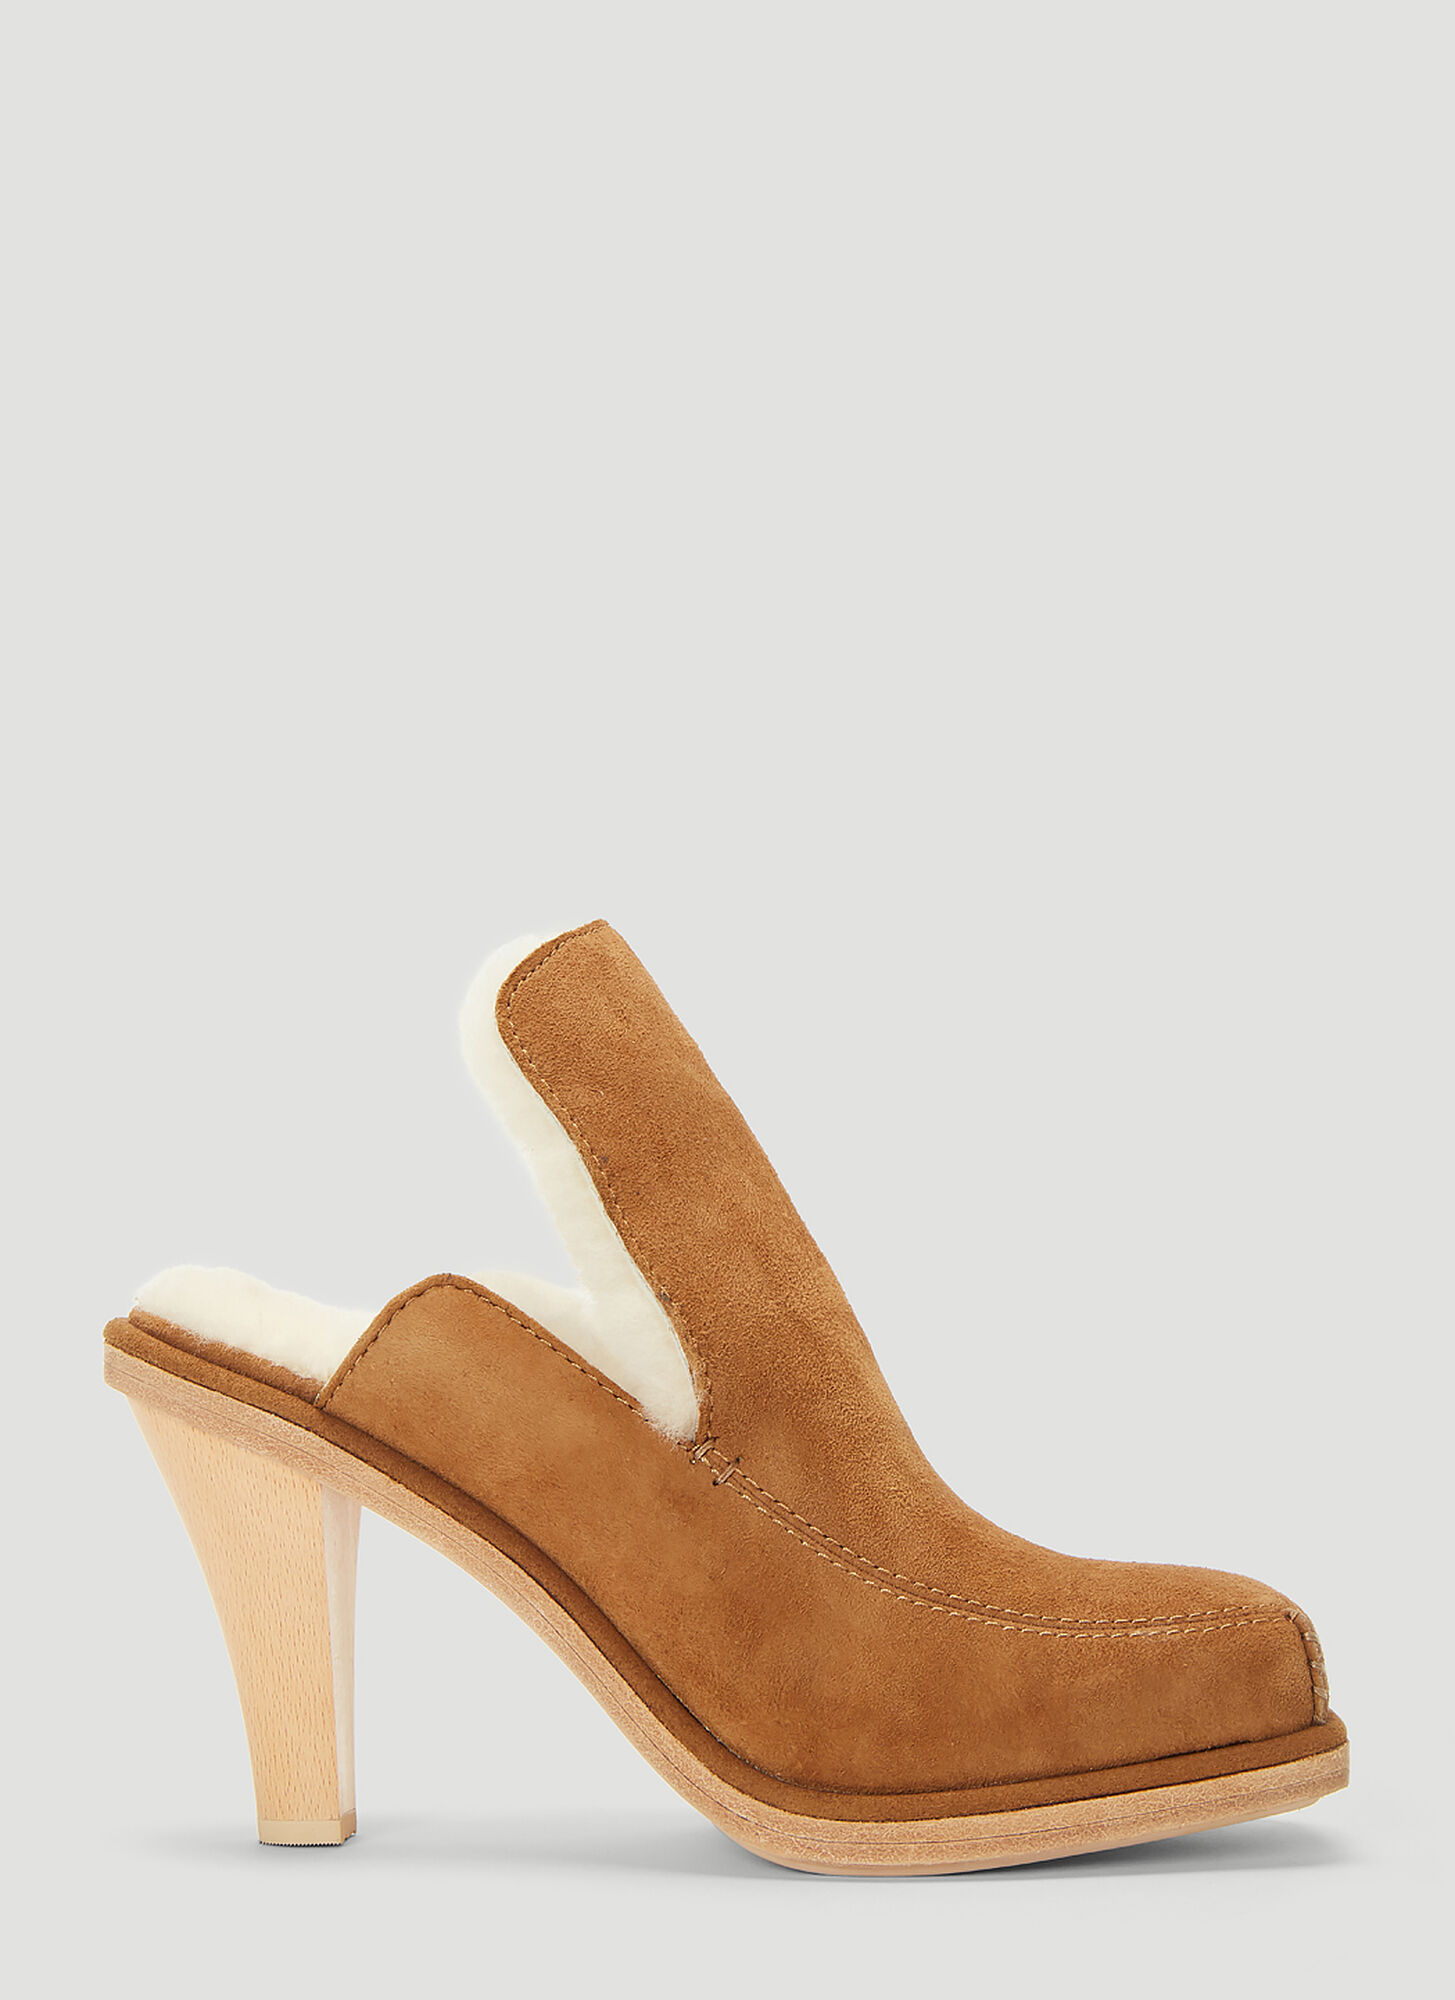 Eckhaus Latta X Ugg Court Mules in Brown